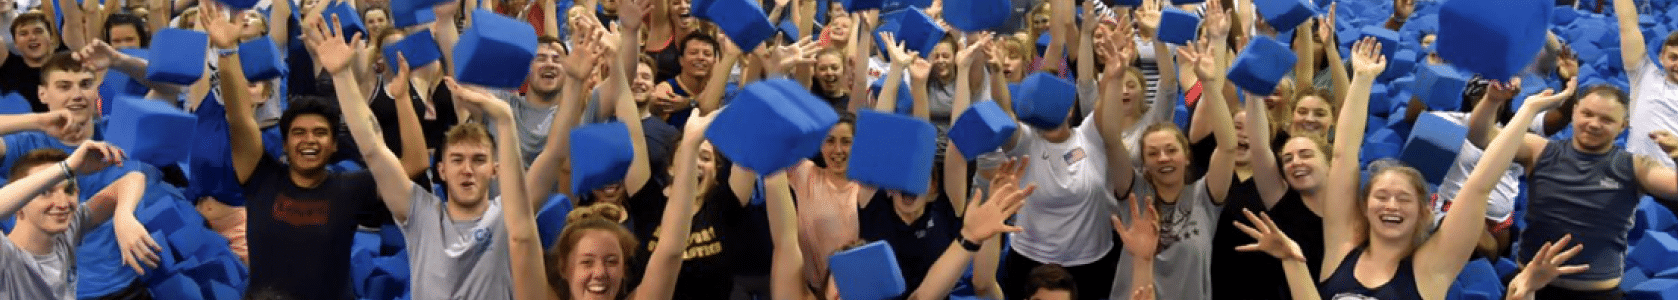 Coaches throwing foam blocks in the air for group photo